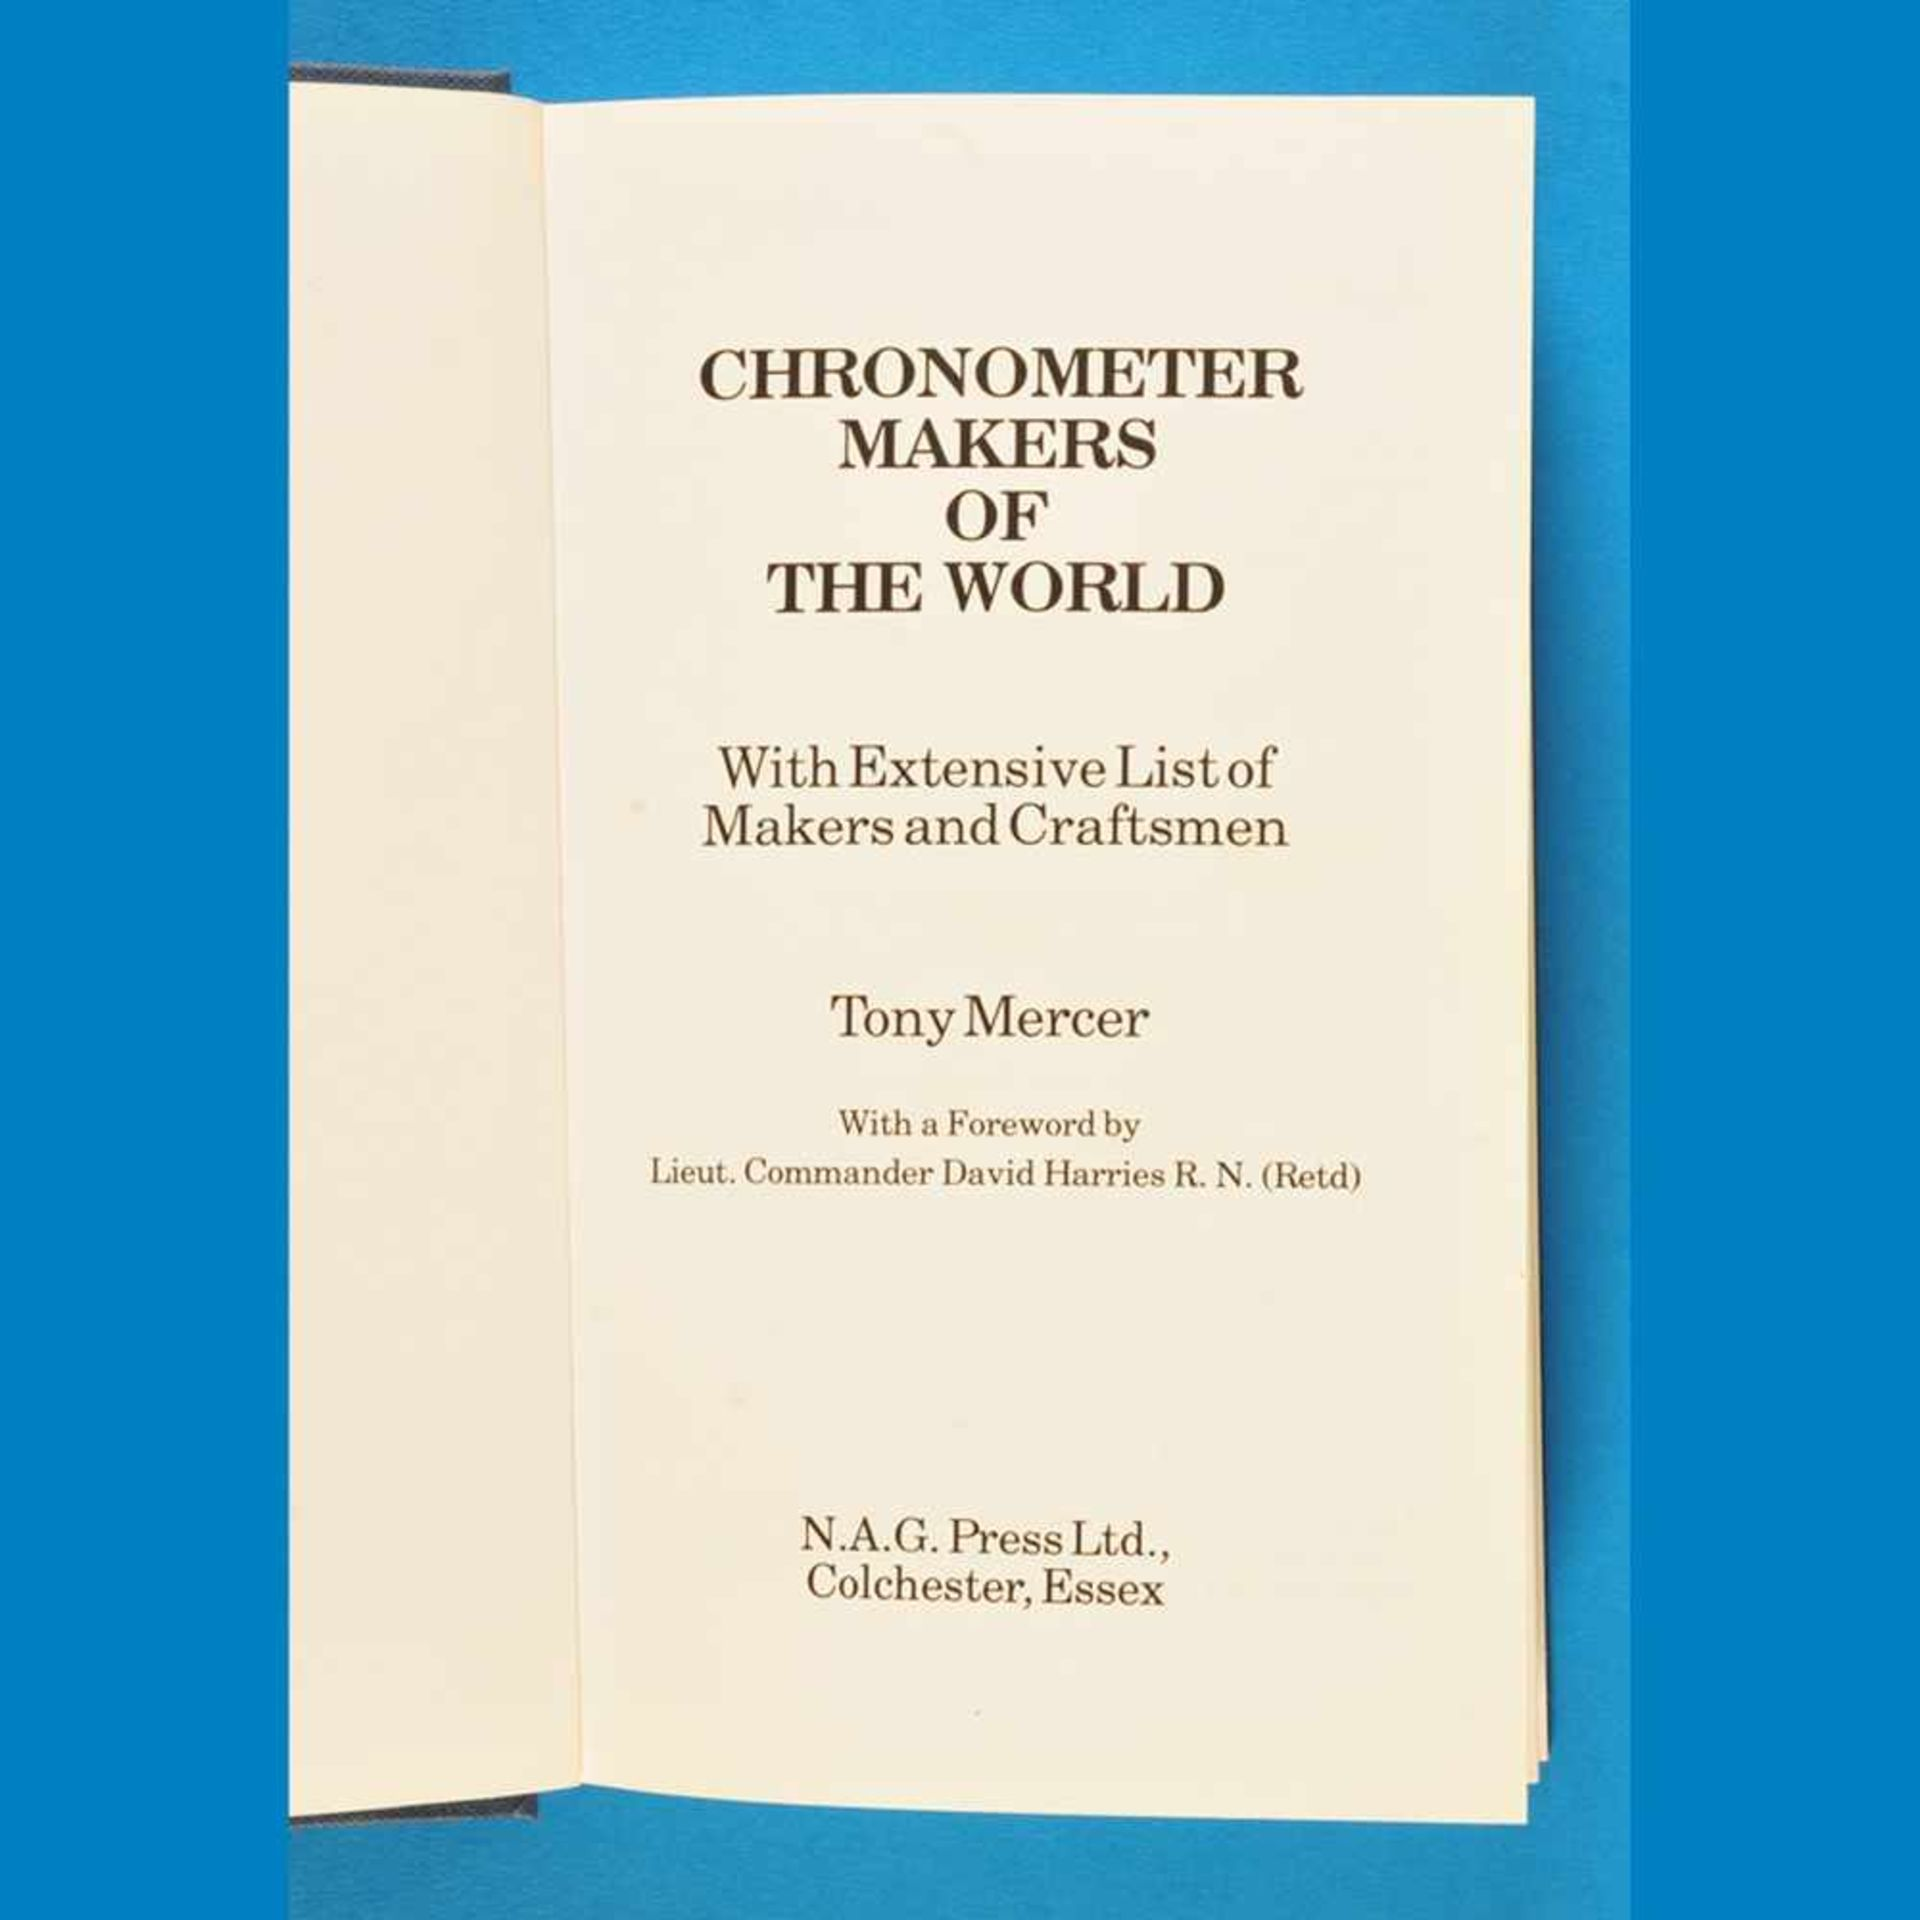 Thony Mercer, Chronometer Makers of the World - With Extensive List of Makers and Craftsmen, 1991<b